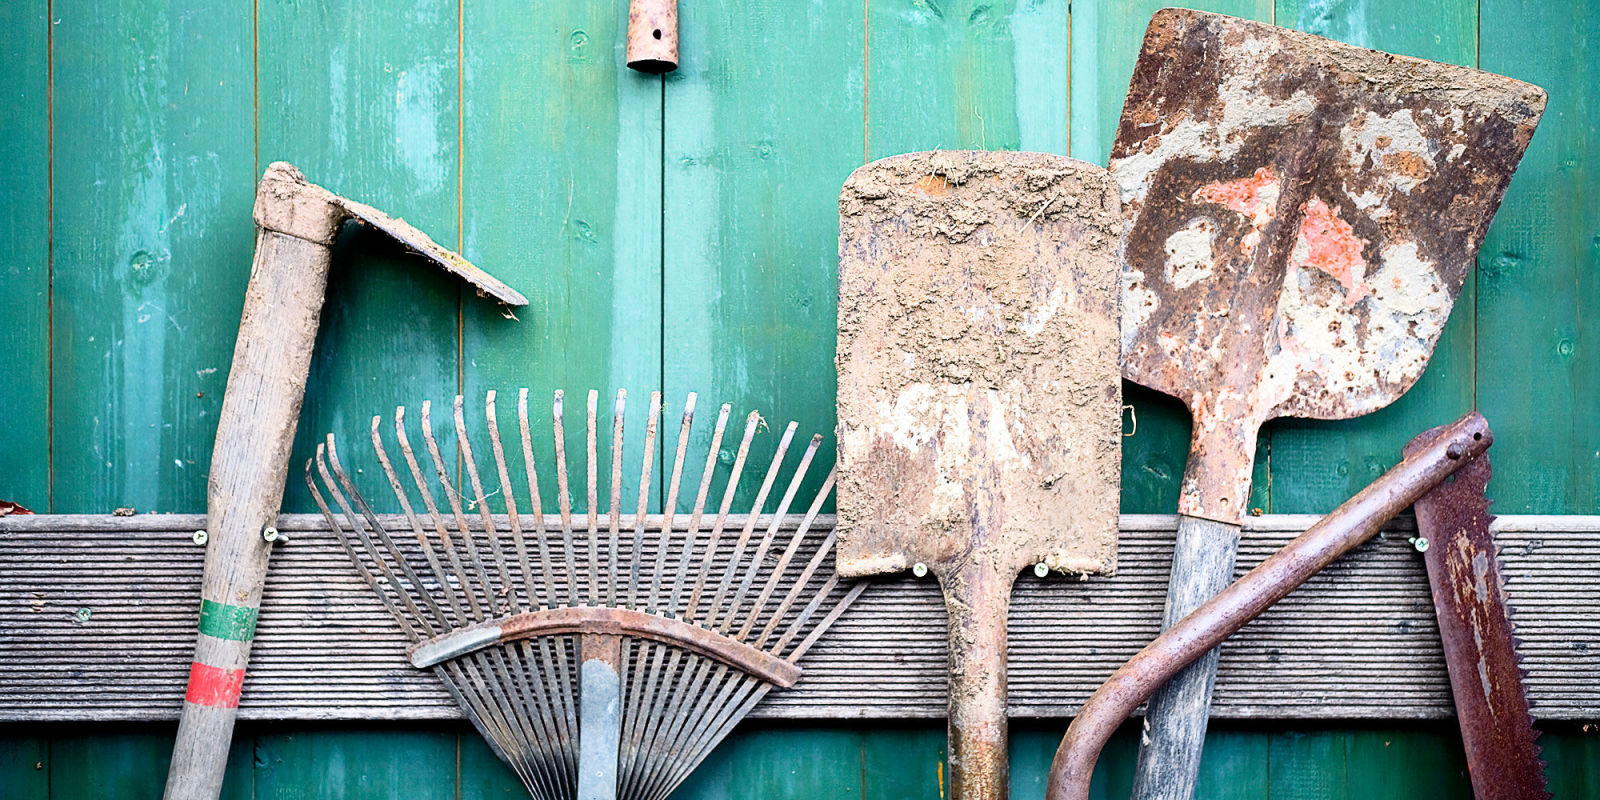 How to look after your different gardening tools garden for Different tools and equipment in horticulture